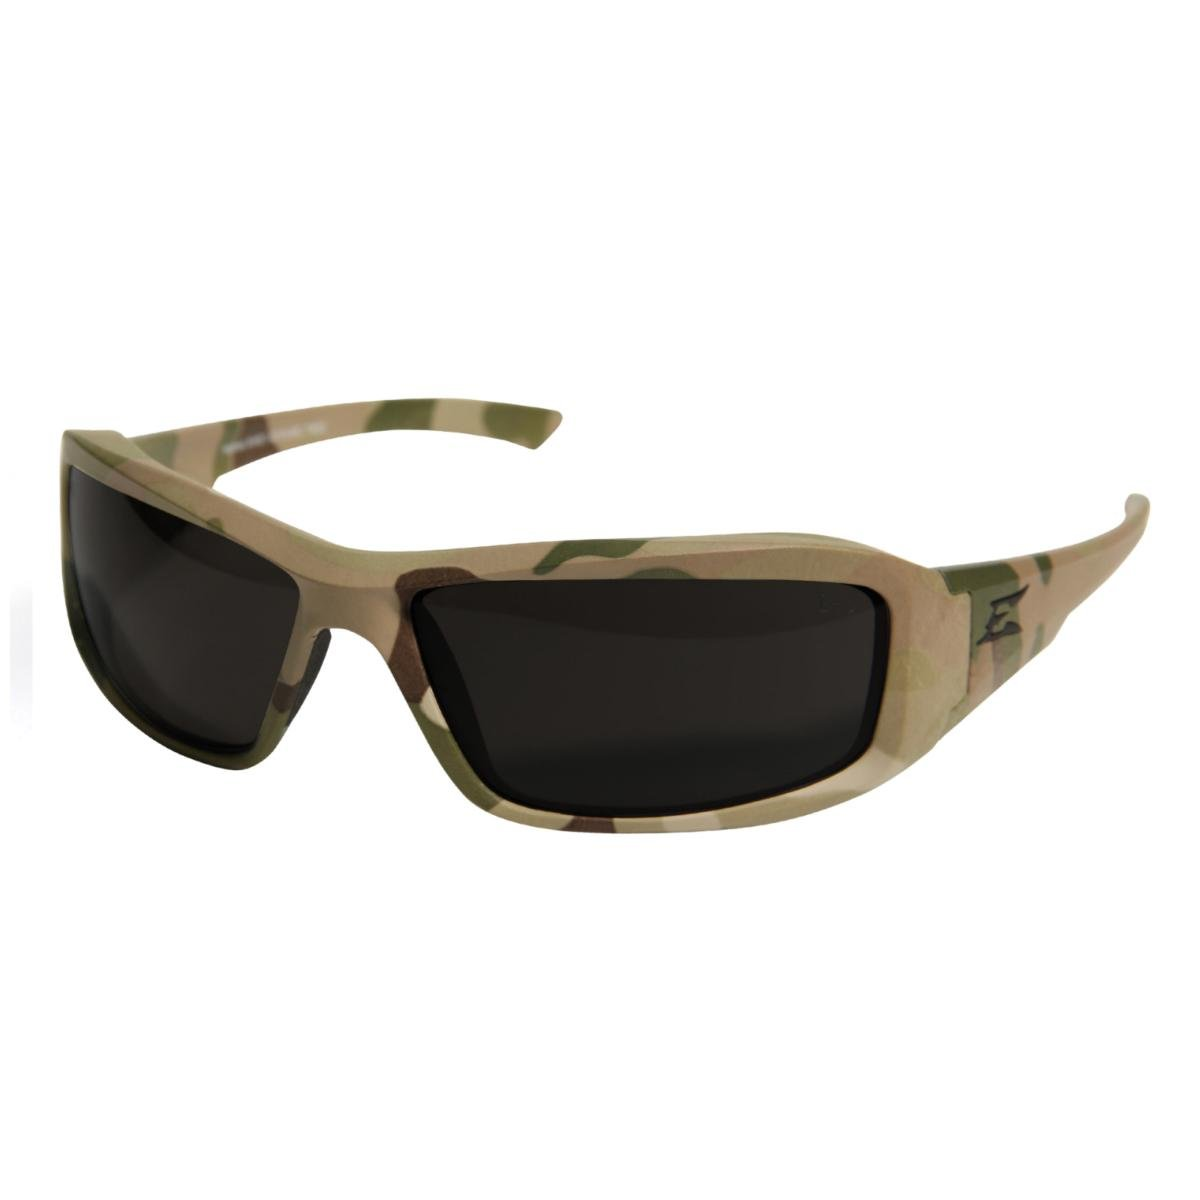 Amazon.com : Edge Eyewear Hamel Glasses, Multicam Frame/G-15 Vapor Shield Lens : Sports & Outdoors